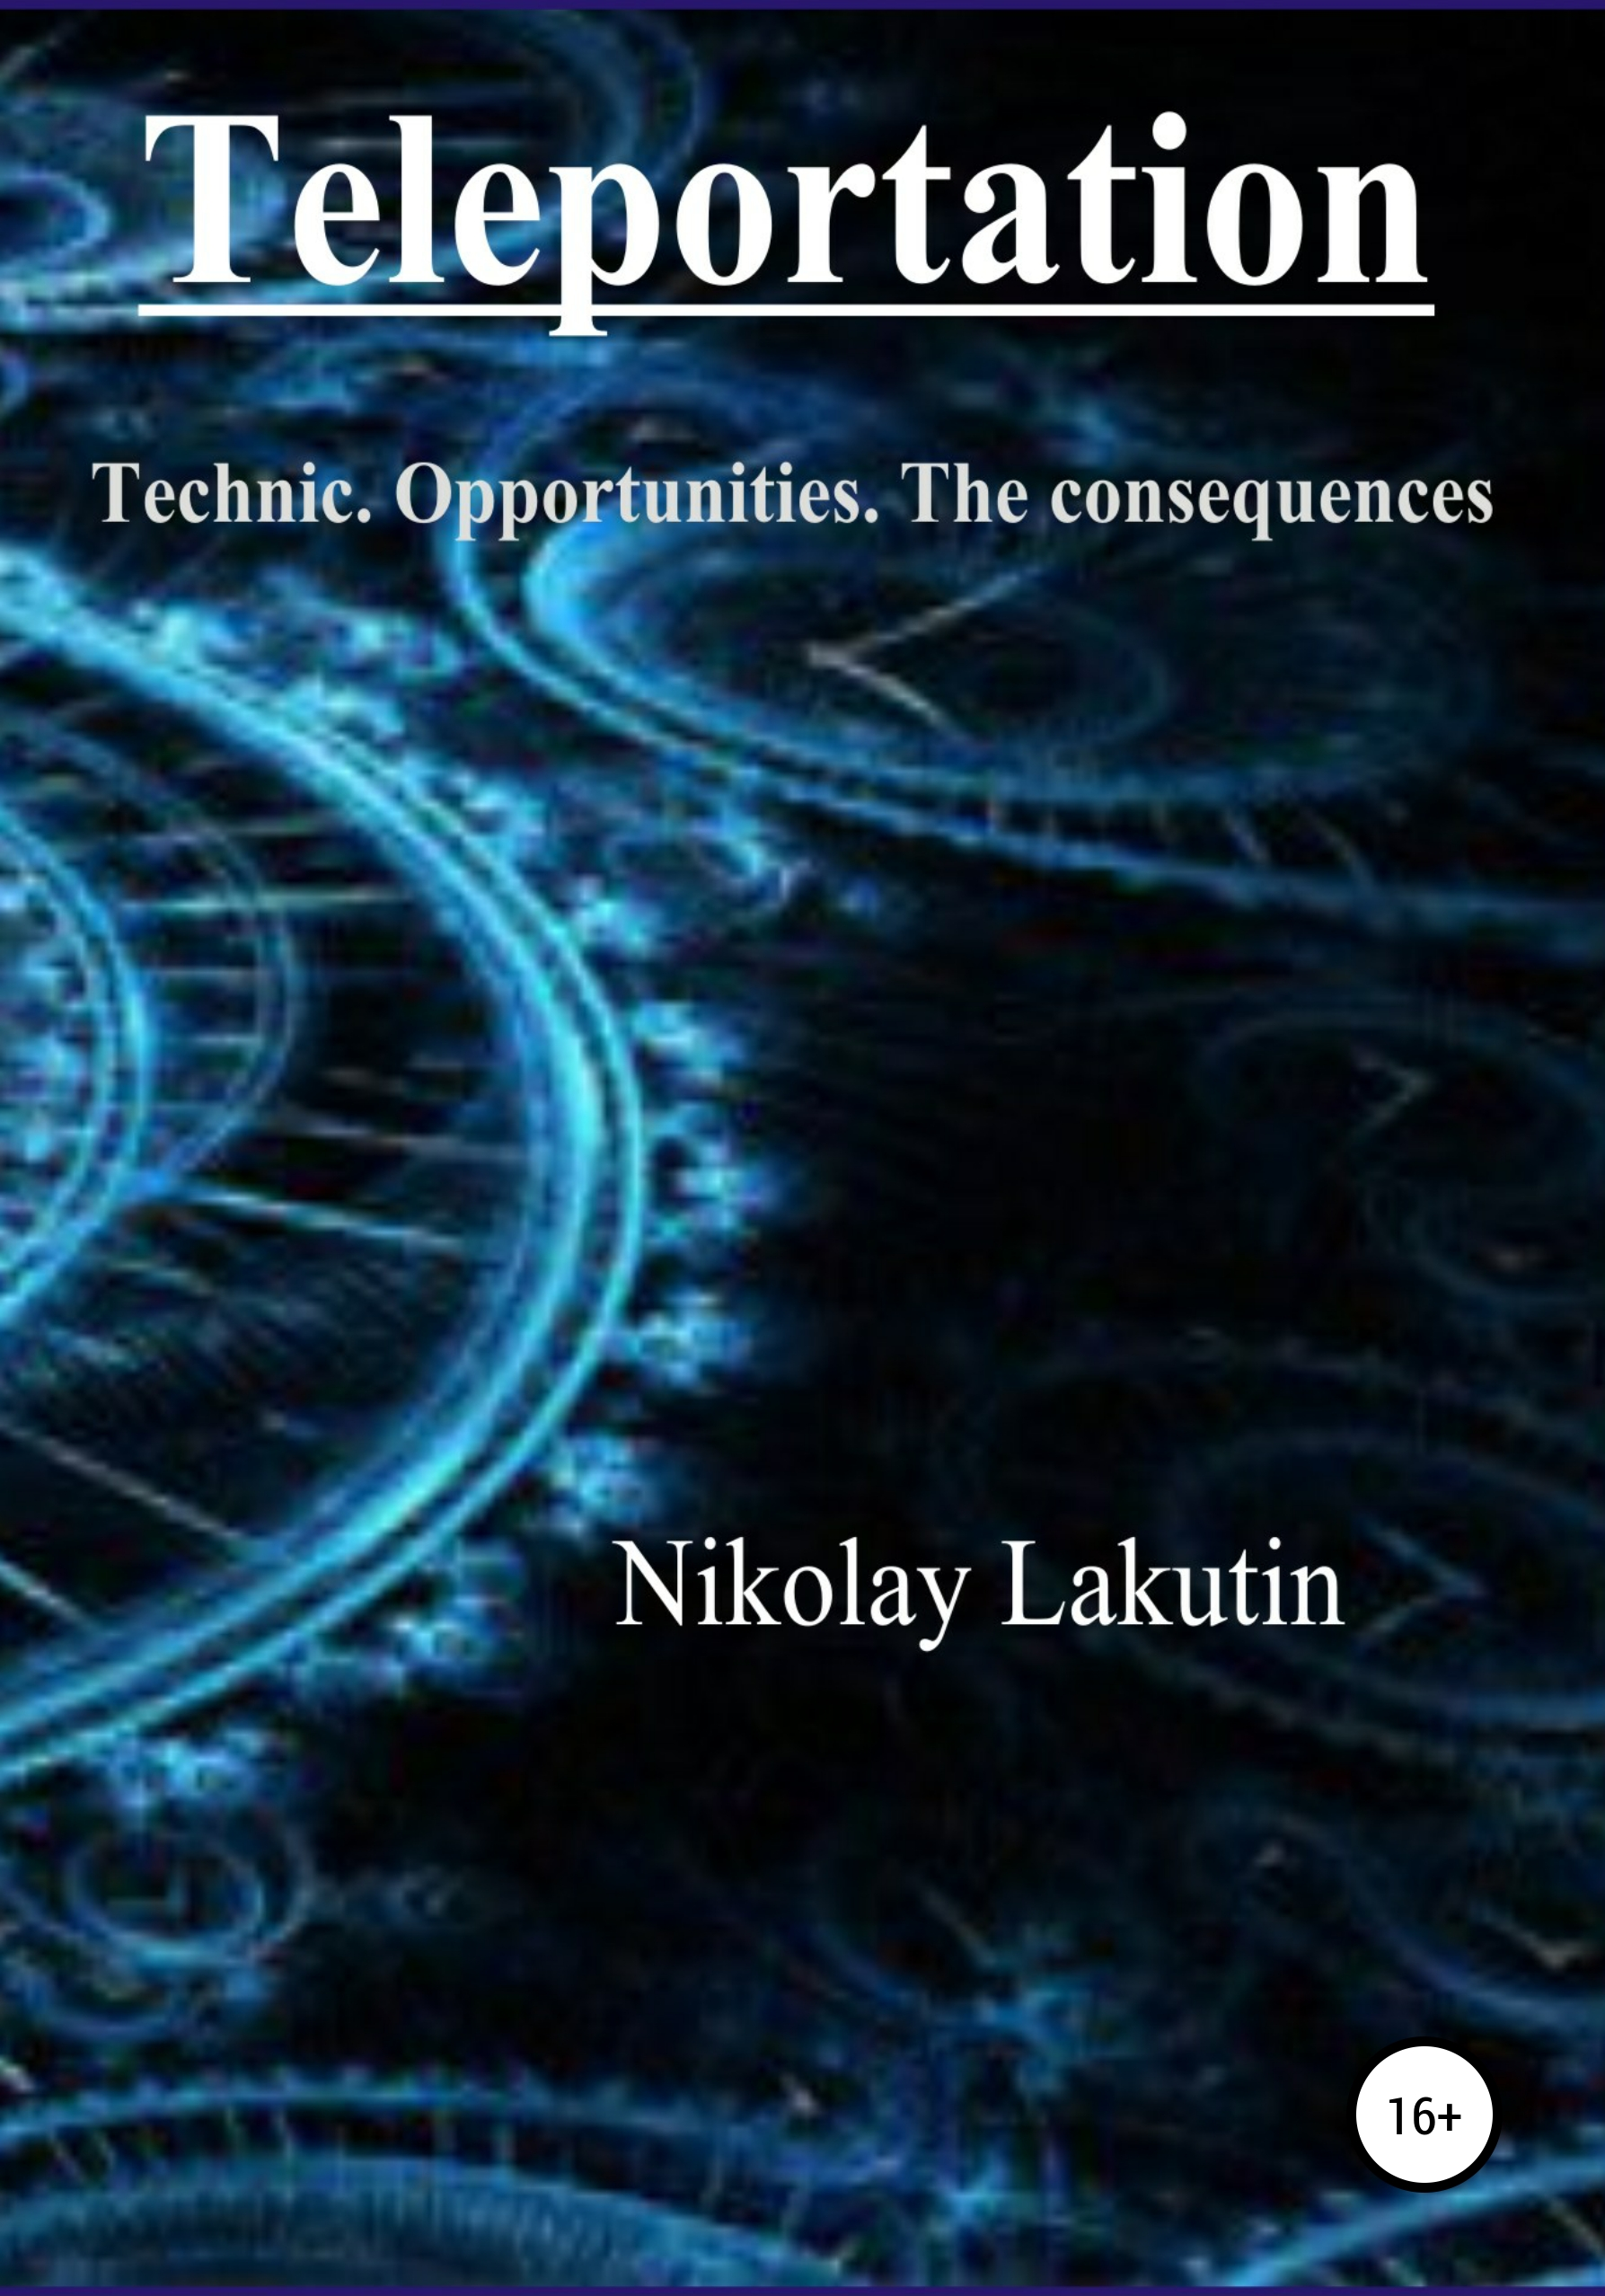 Nikolay Lakutin Teleportation. Technic. Opportunities. The consequences the things i should have told you